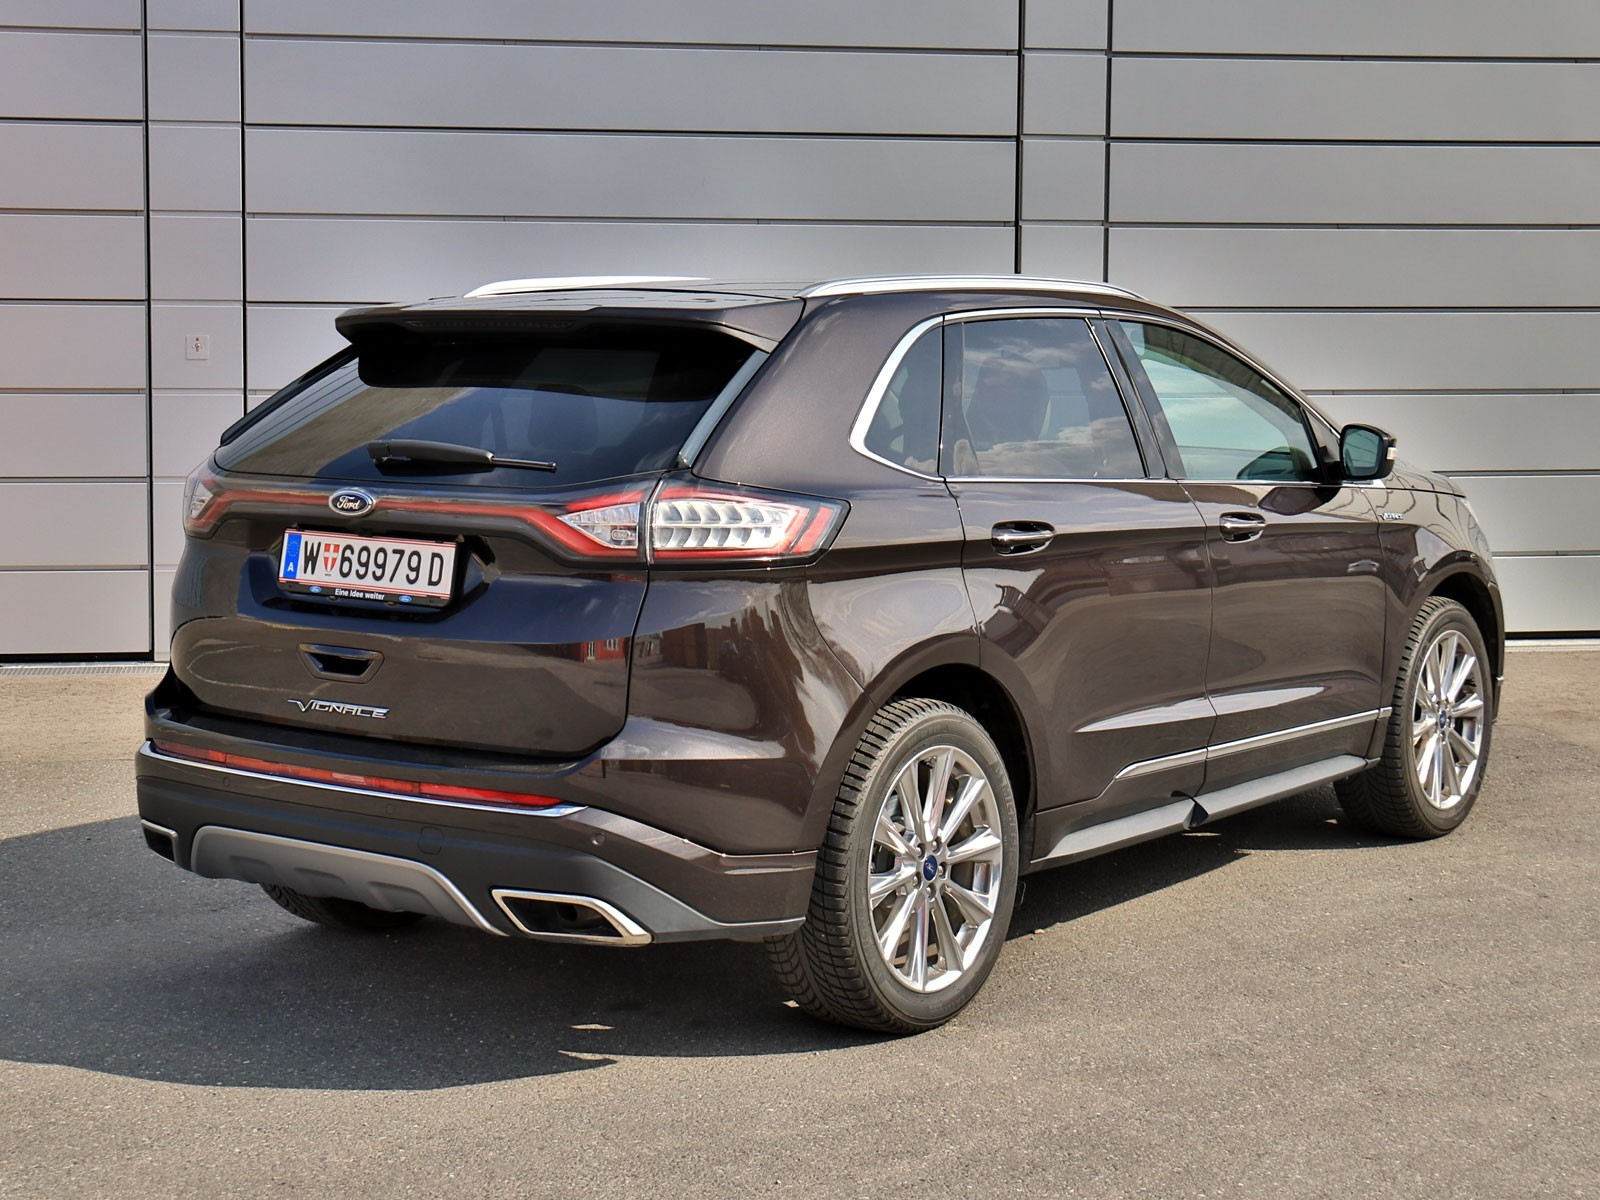 foto ford edge vignale 2 0 tdci 210 ps at awd testbericht vom artikel ford edge vignale. Black Bedroom Furniture Sets. Home Design Ideas